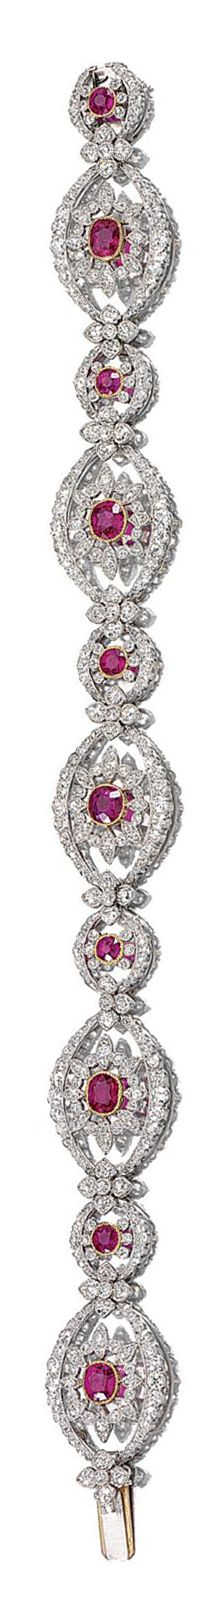 RUBY AND DIAMOND BRACELET, CIRCA 1910